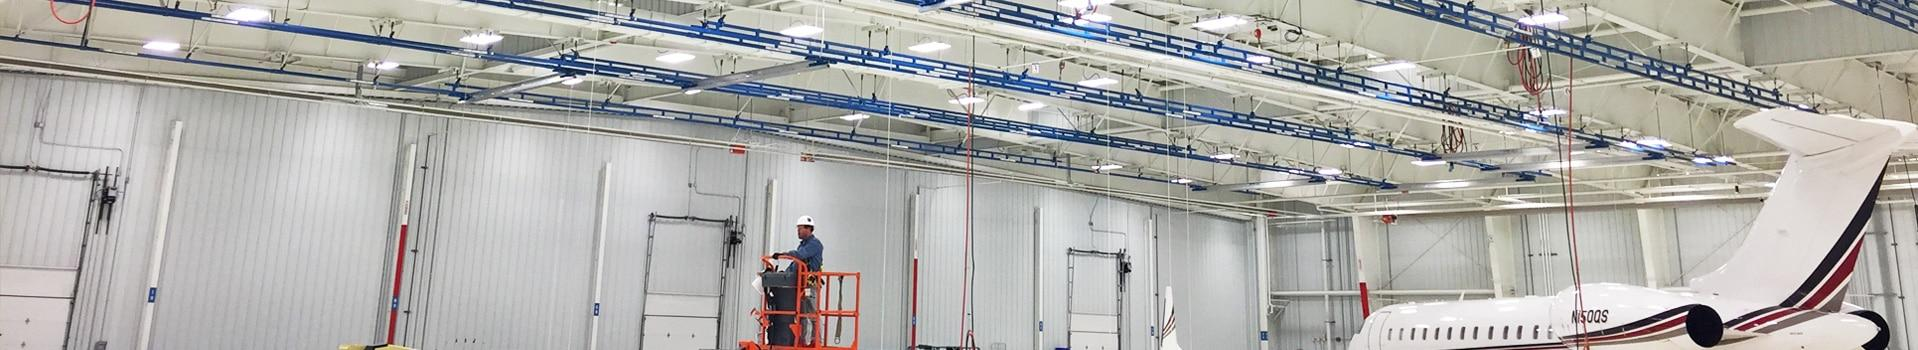 fall protection systems for aircraft hangars